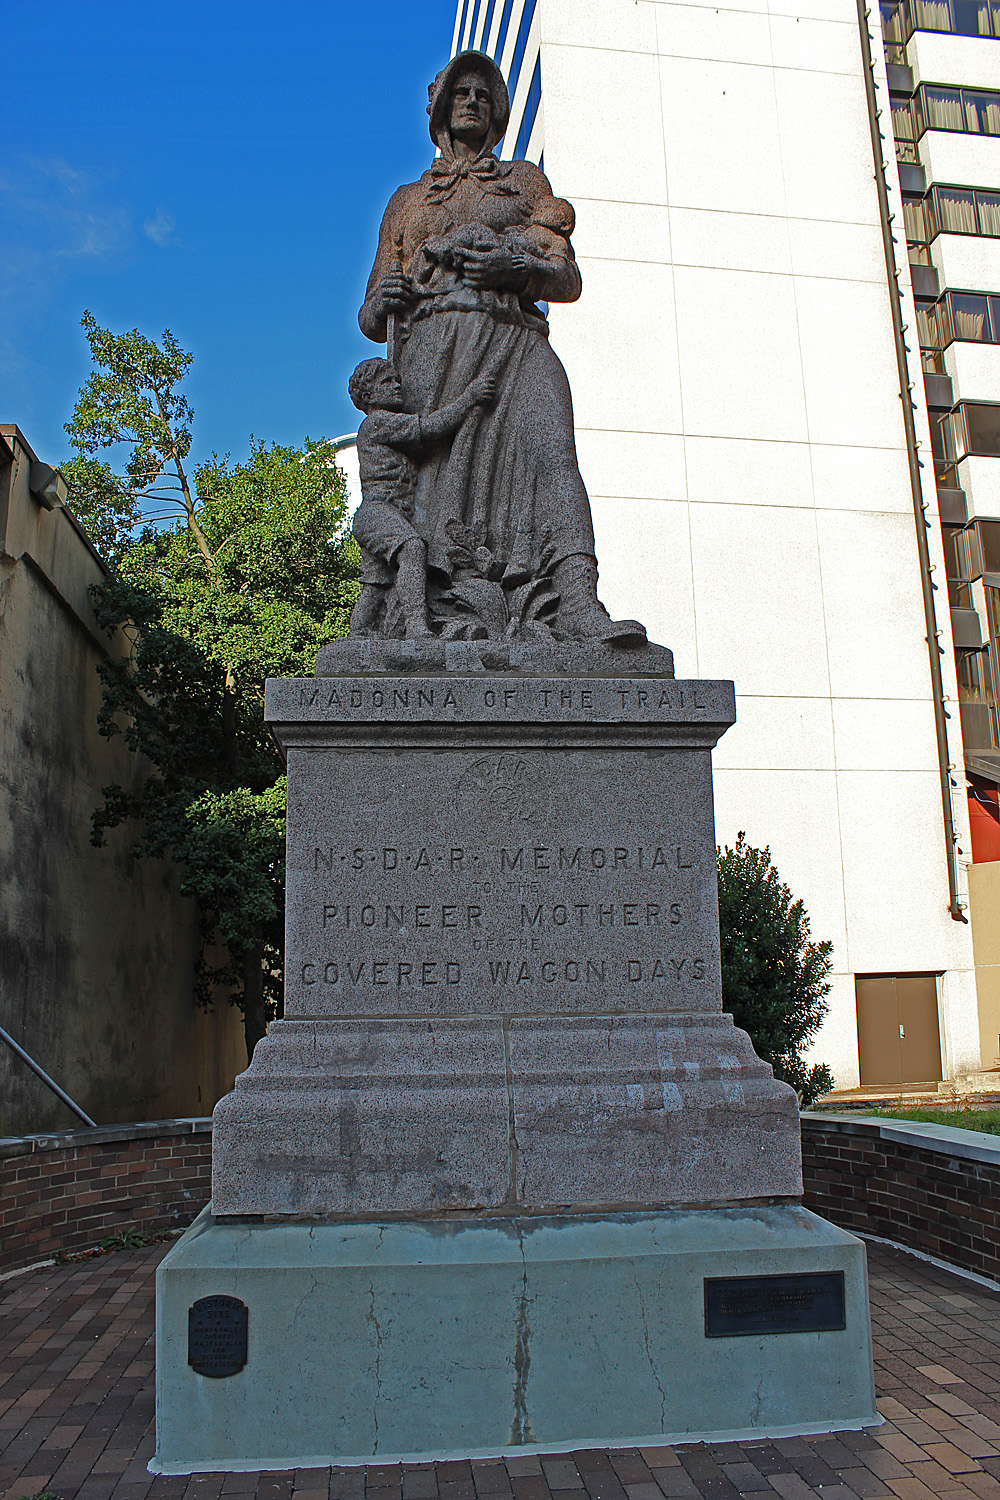 August Leimbach, Madonna of the Trail, Bethesda, Maryland